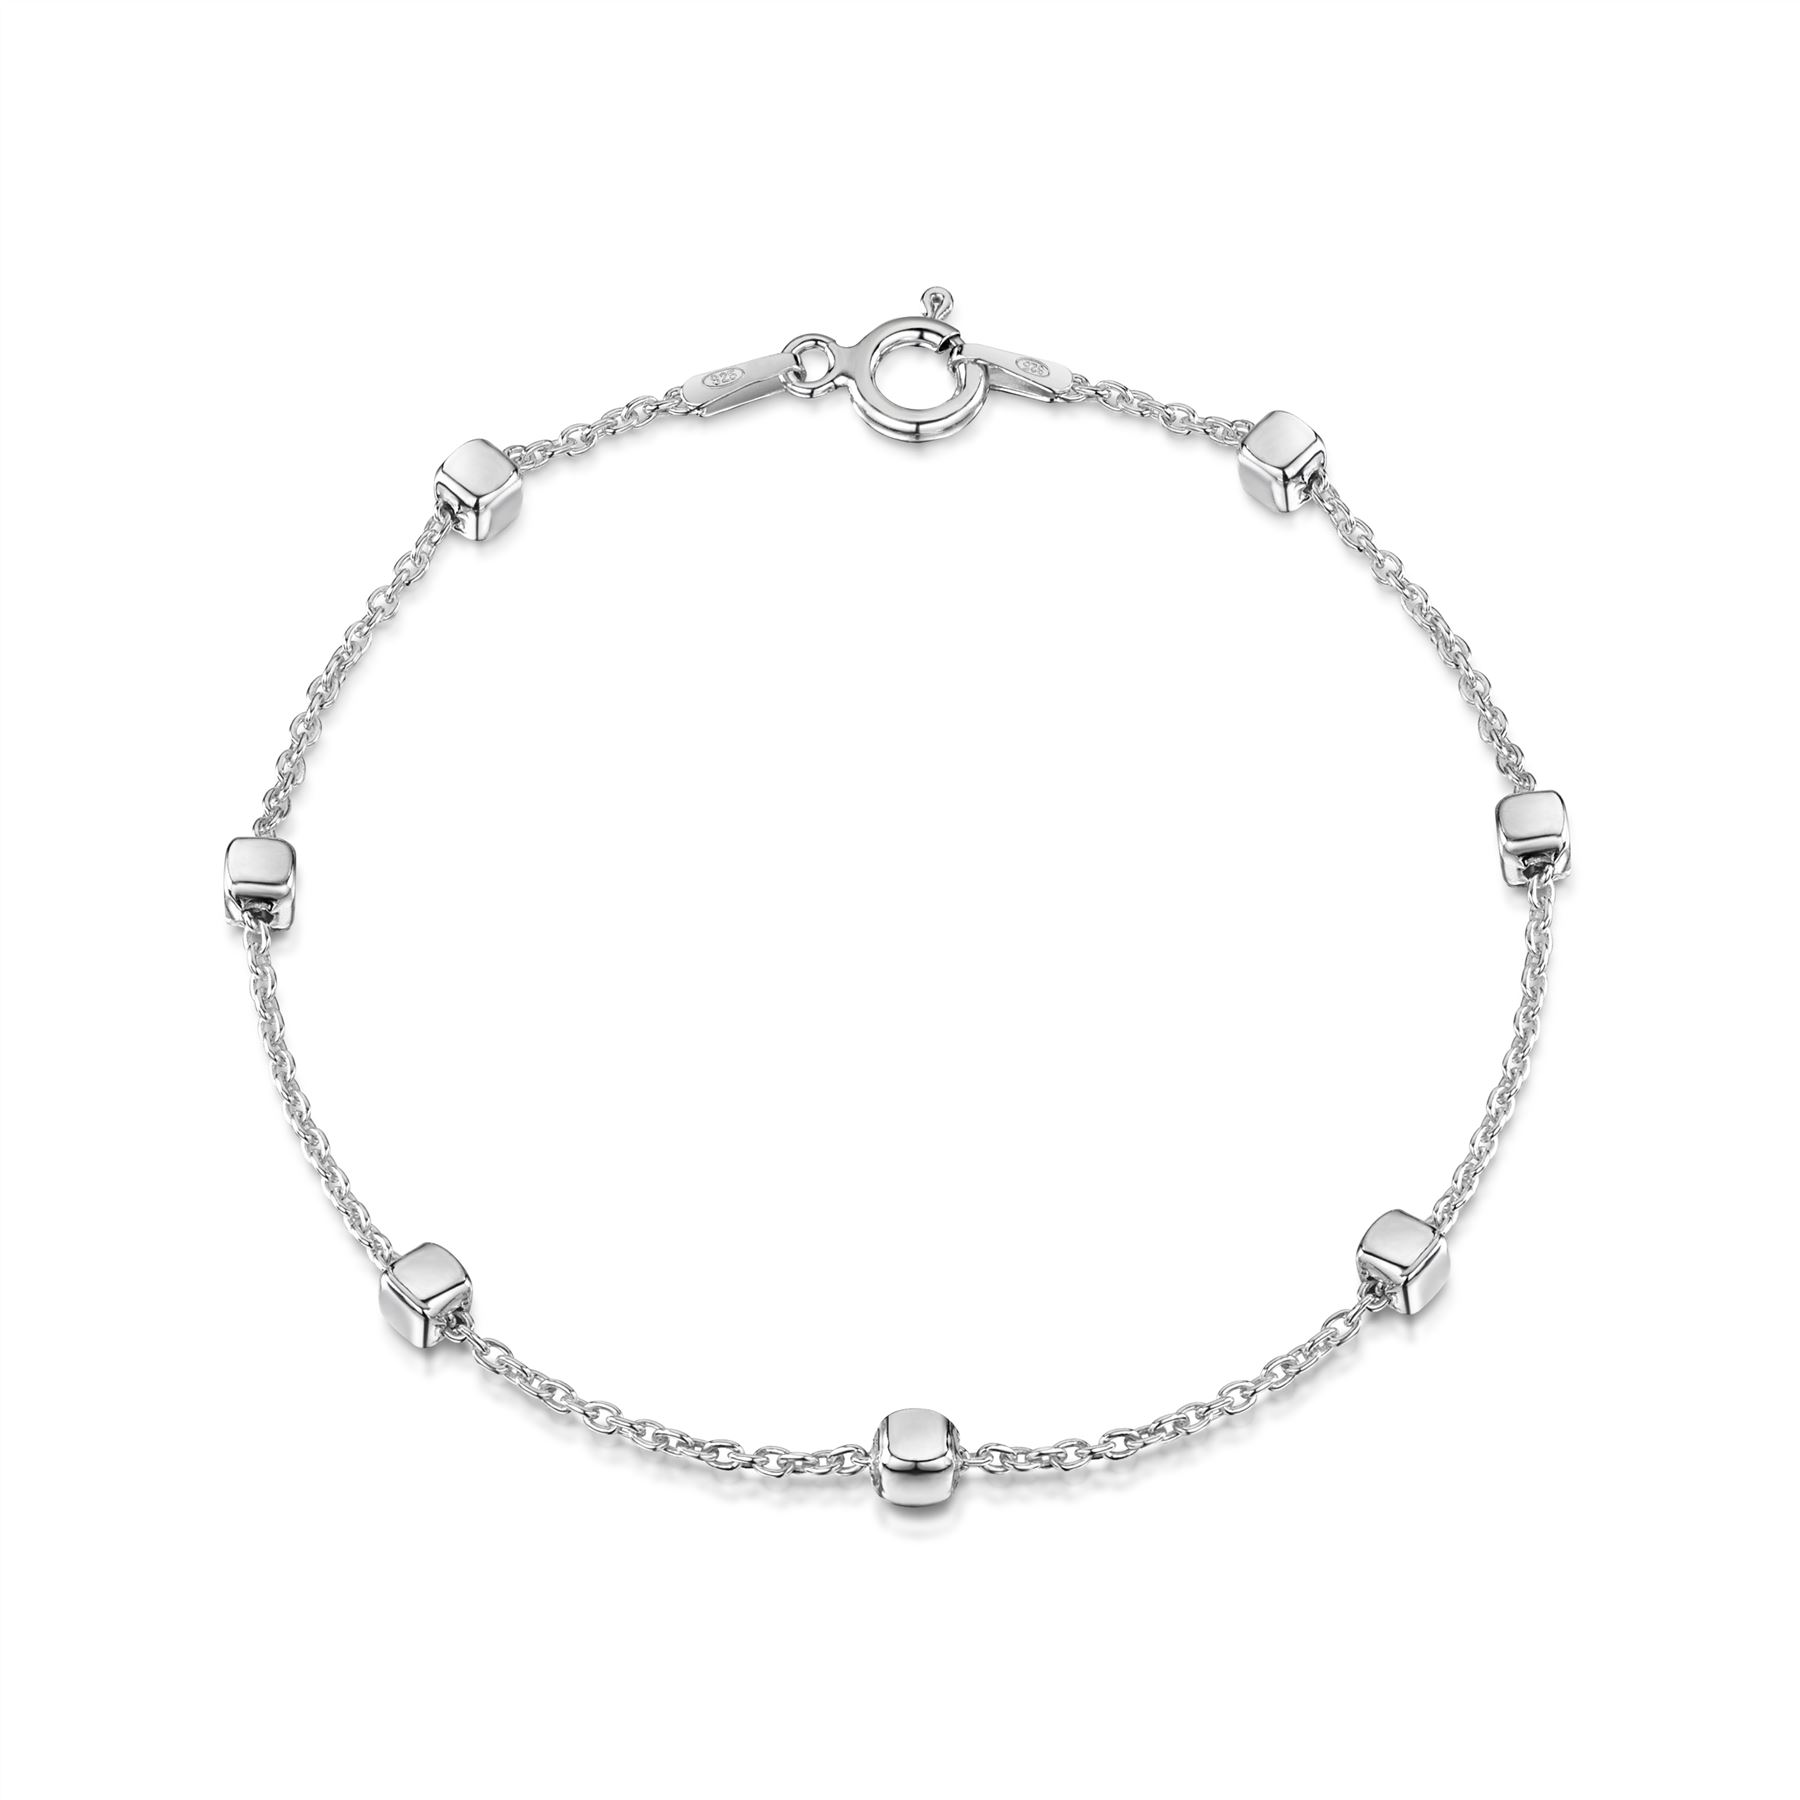 Amberta-Jewelry-Genuine-925-Sterling-Silver-Bracelet-Bangle-Chain-Made-in-Italy thumbnail 12